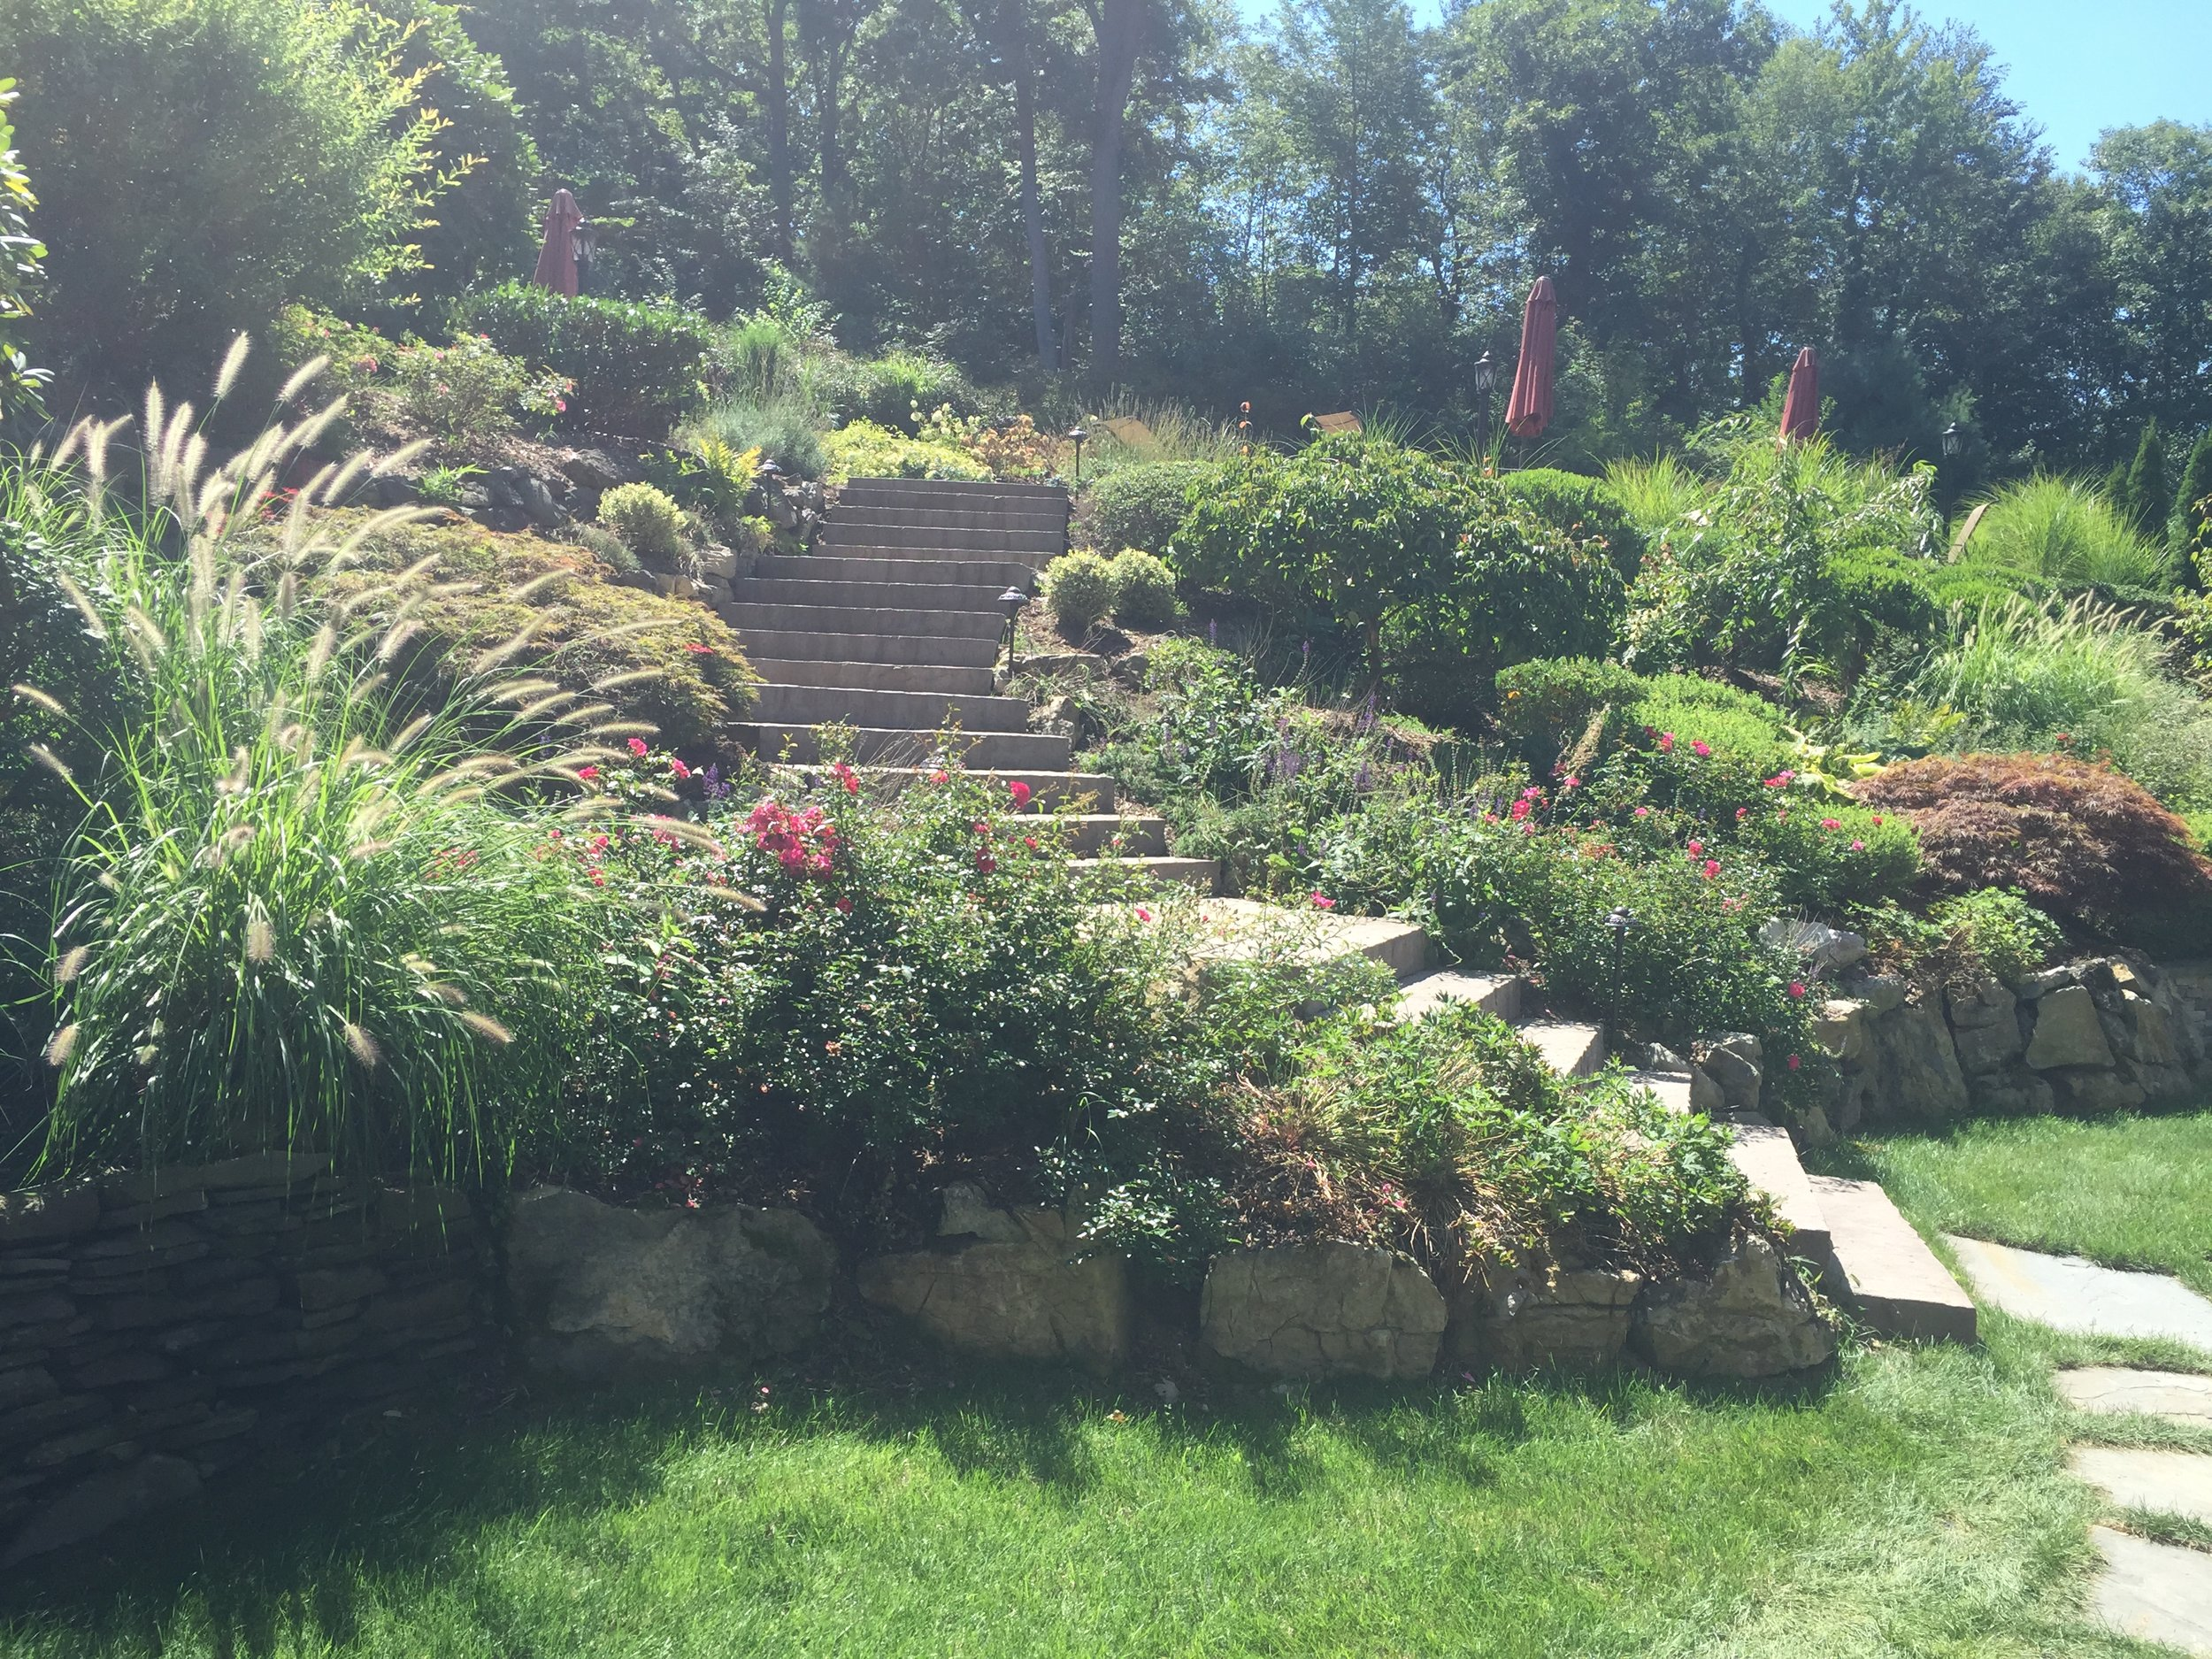 View Project Featuring Plantings:  Lush Tranquility  VIEW PROJECT